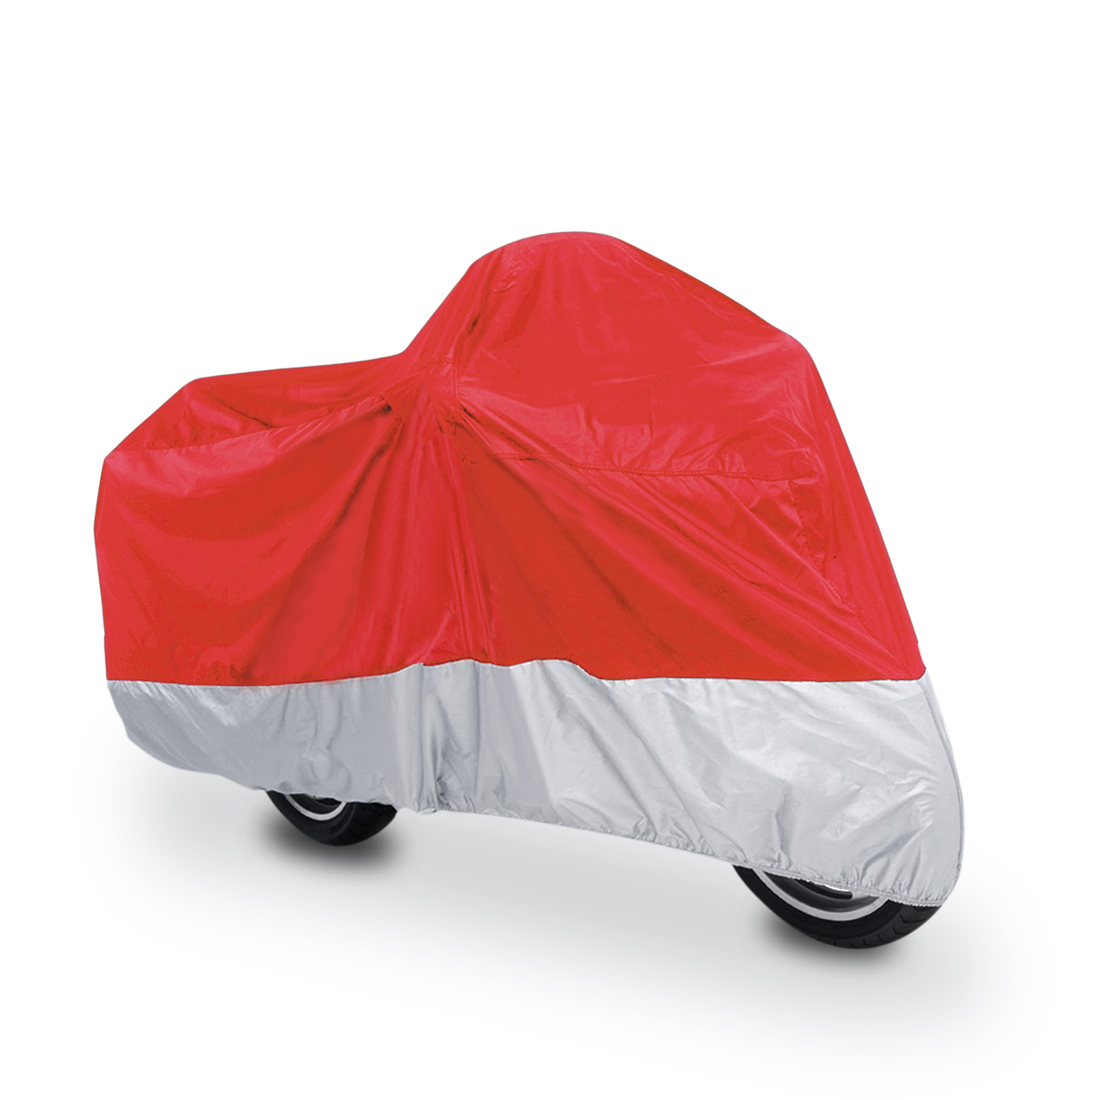 L 180T Rain Dust Motorcycle Cover Red+Silver Outdoor Waterproof UV Protector